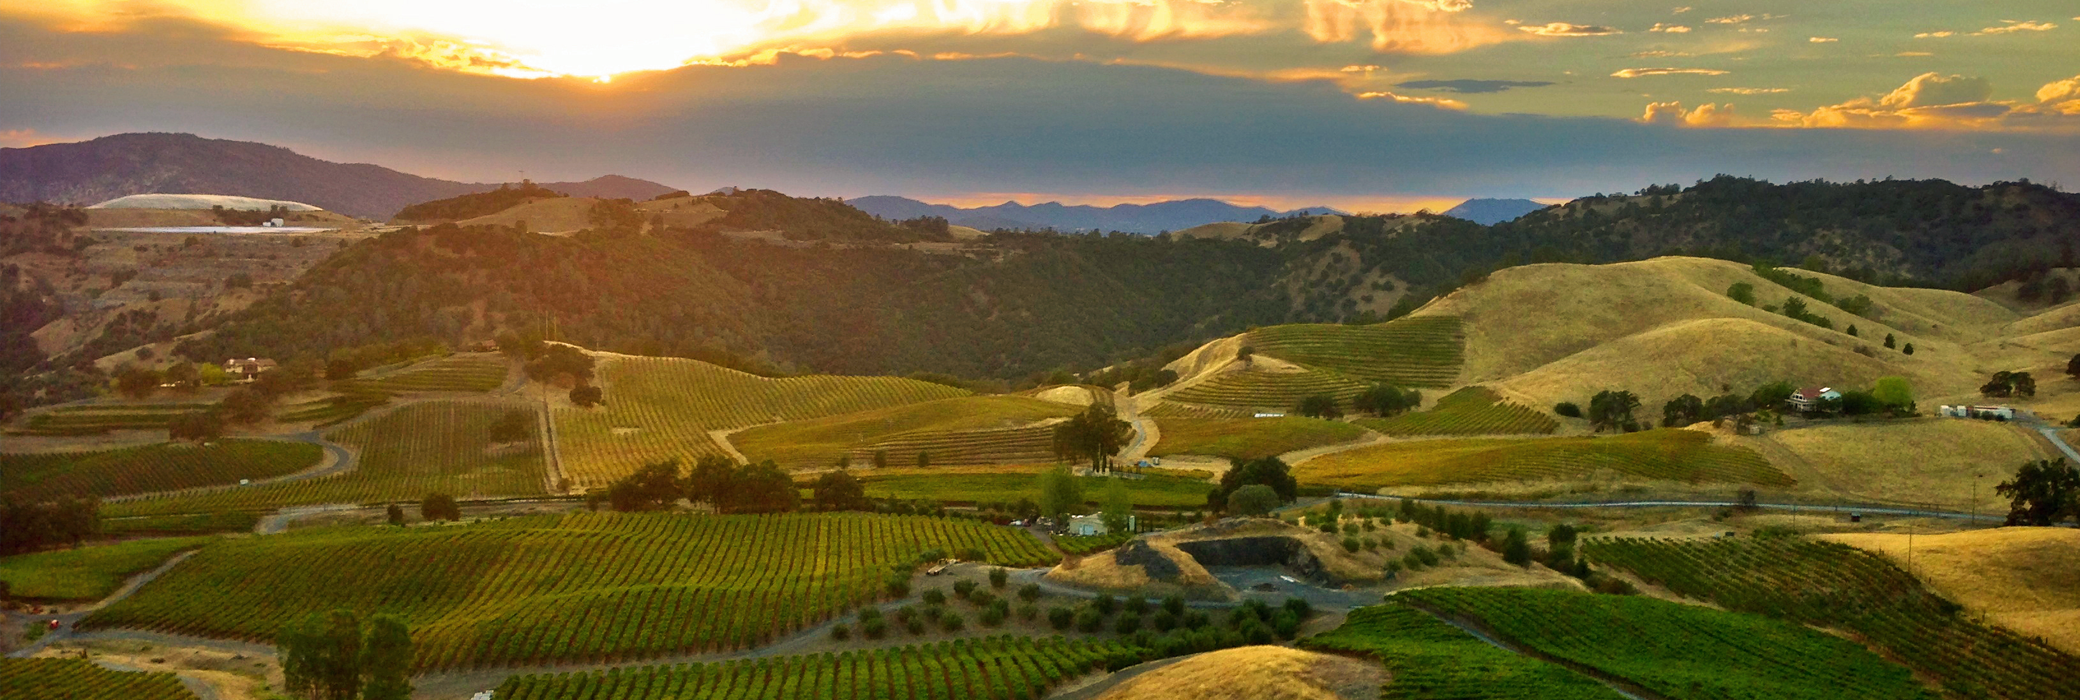 photo-hdr-copper-valley-wine-country